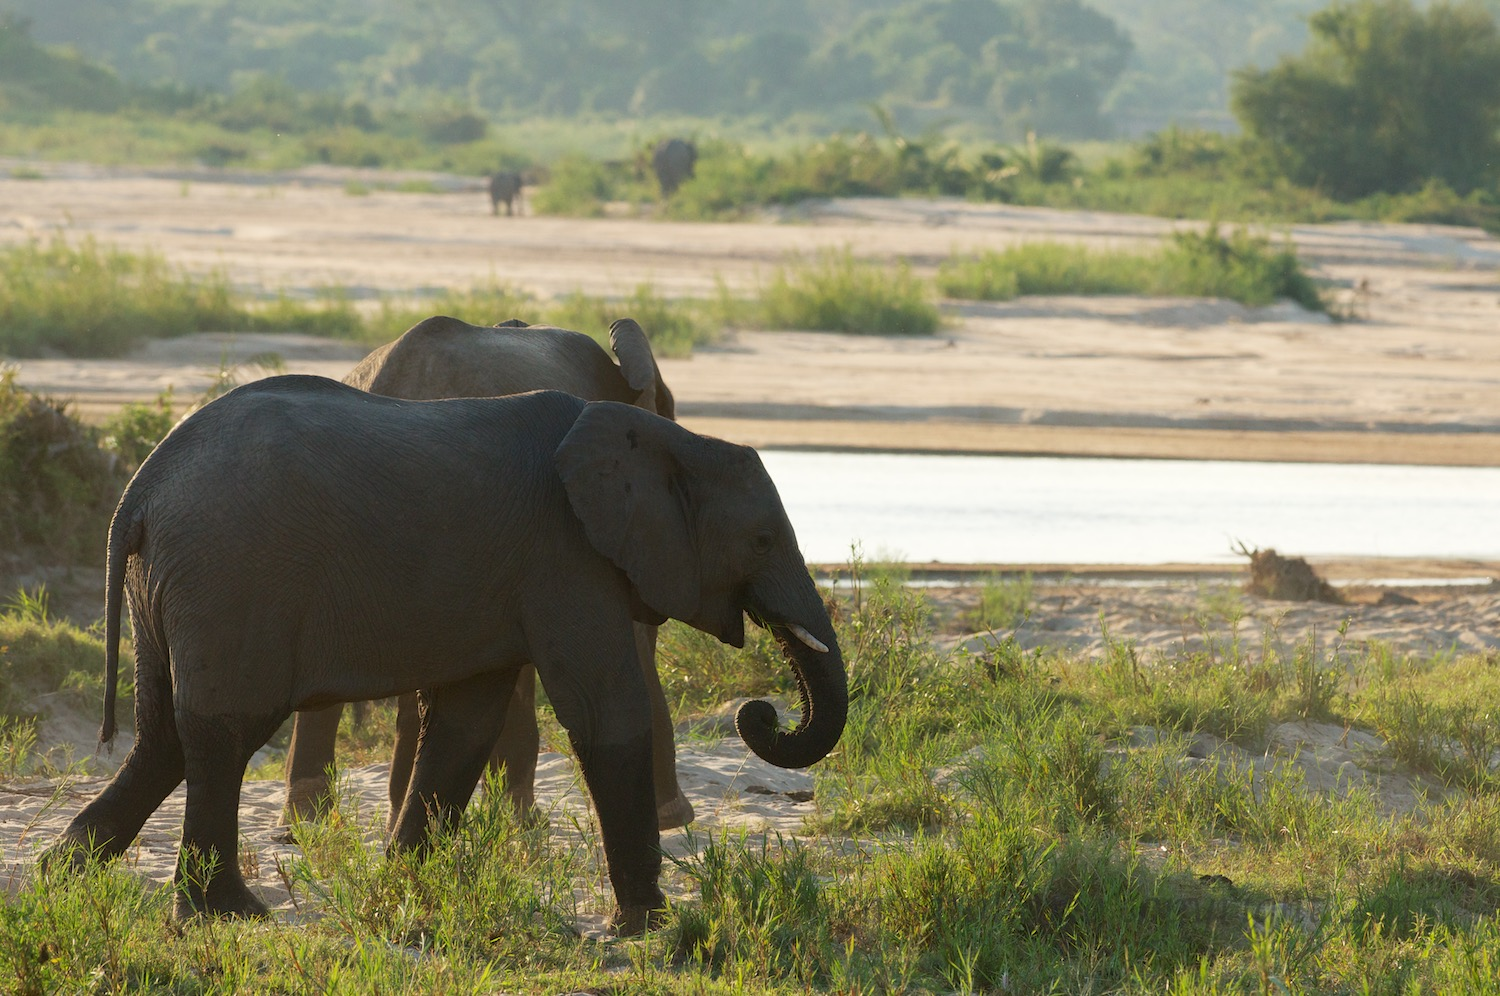 Elephants by the Sand River